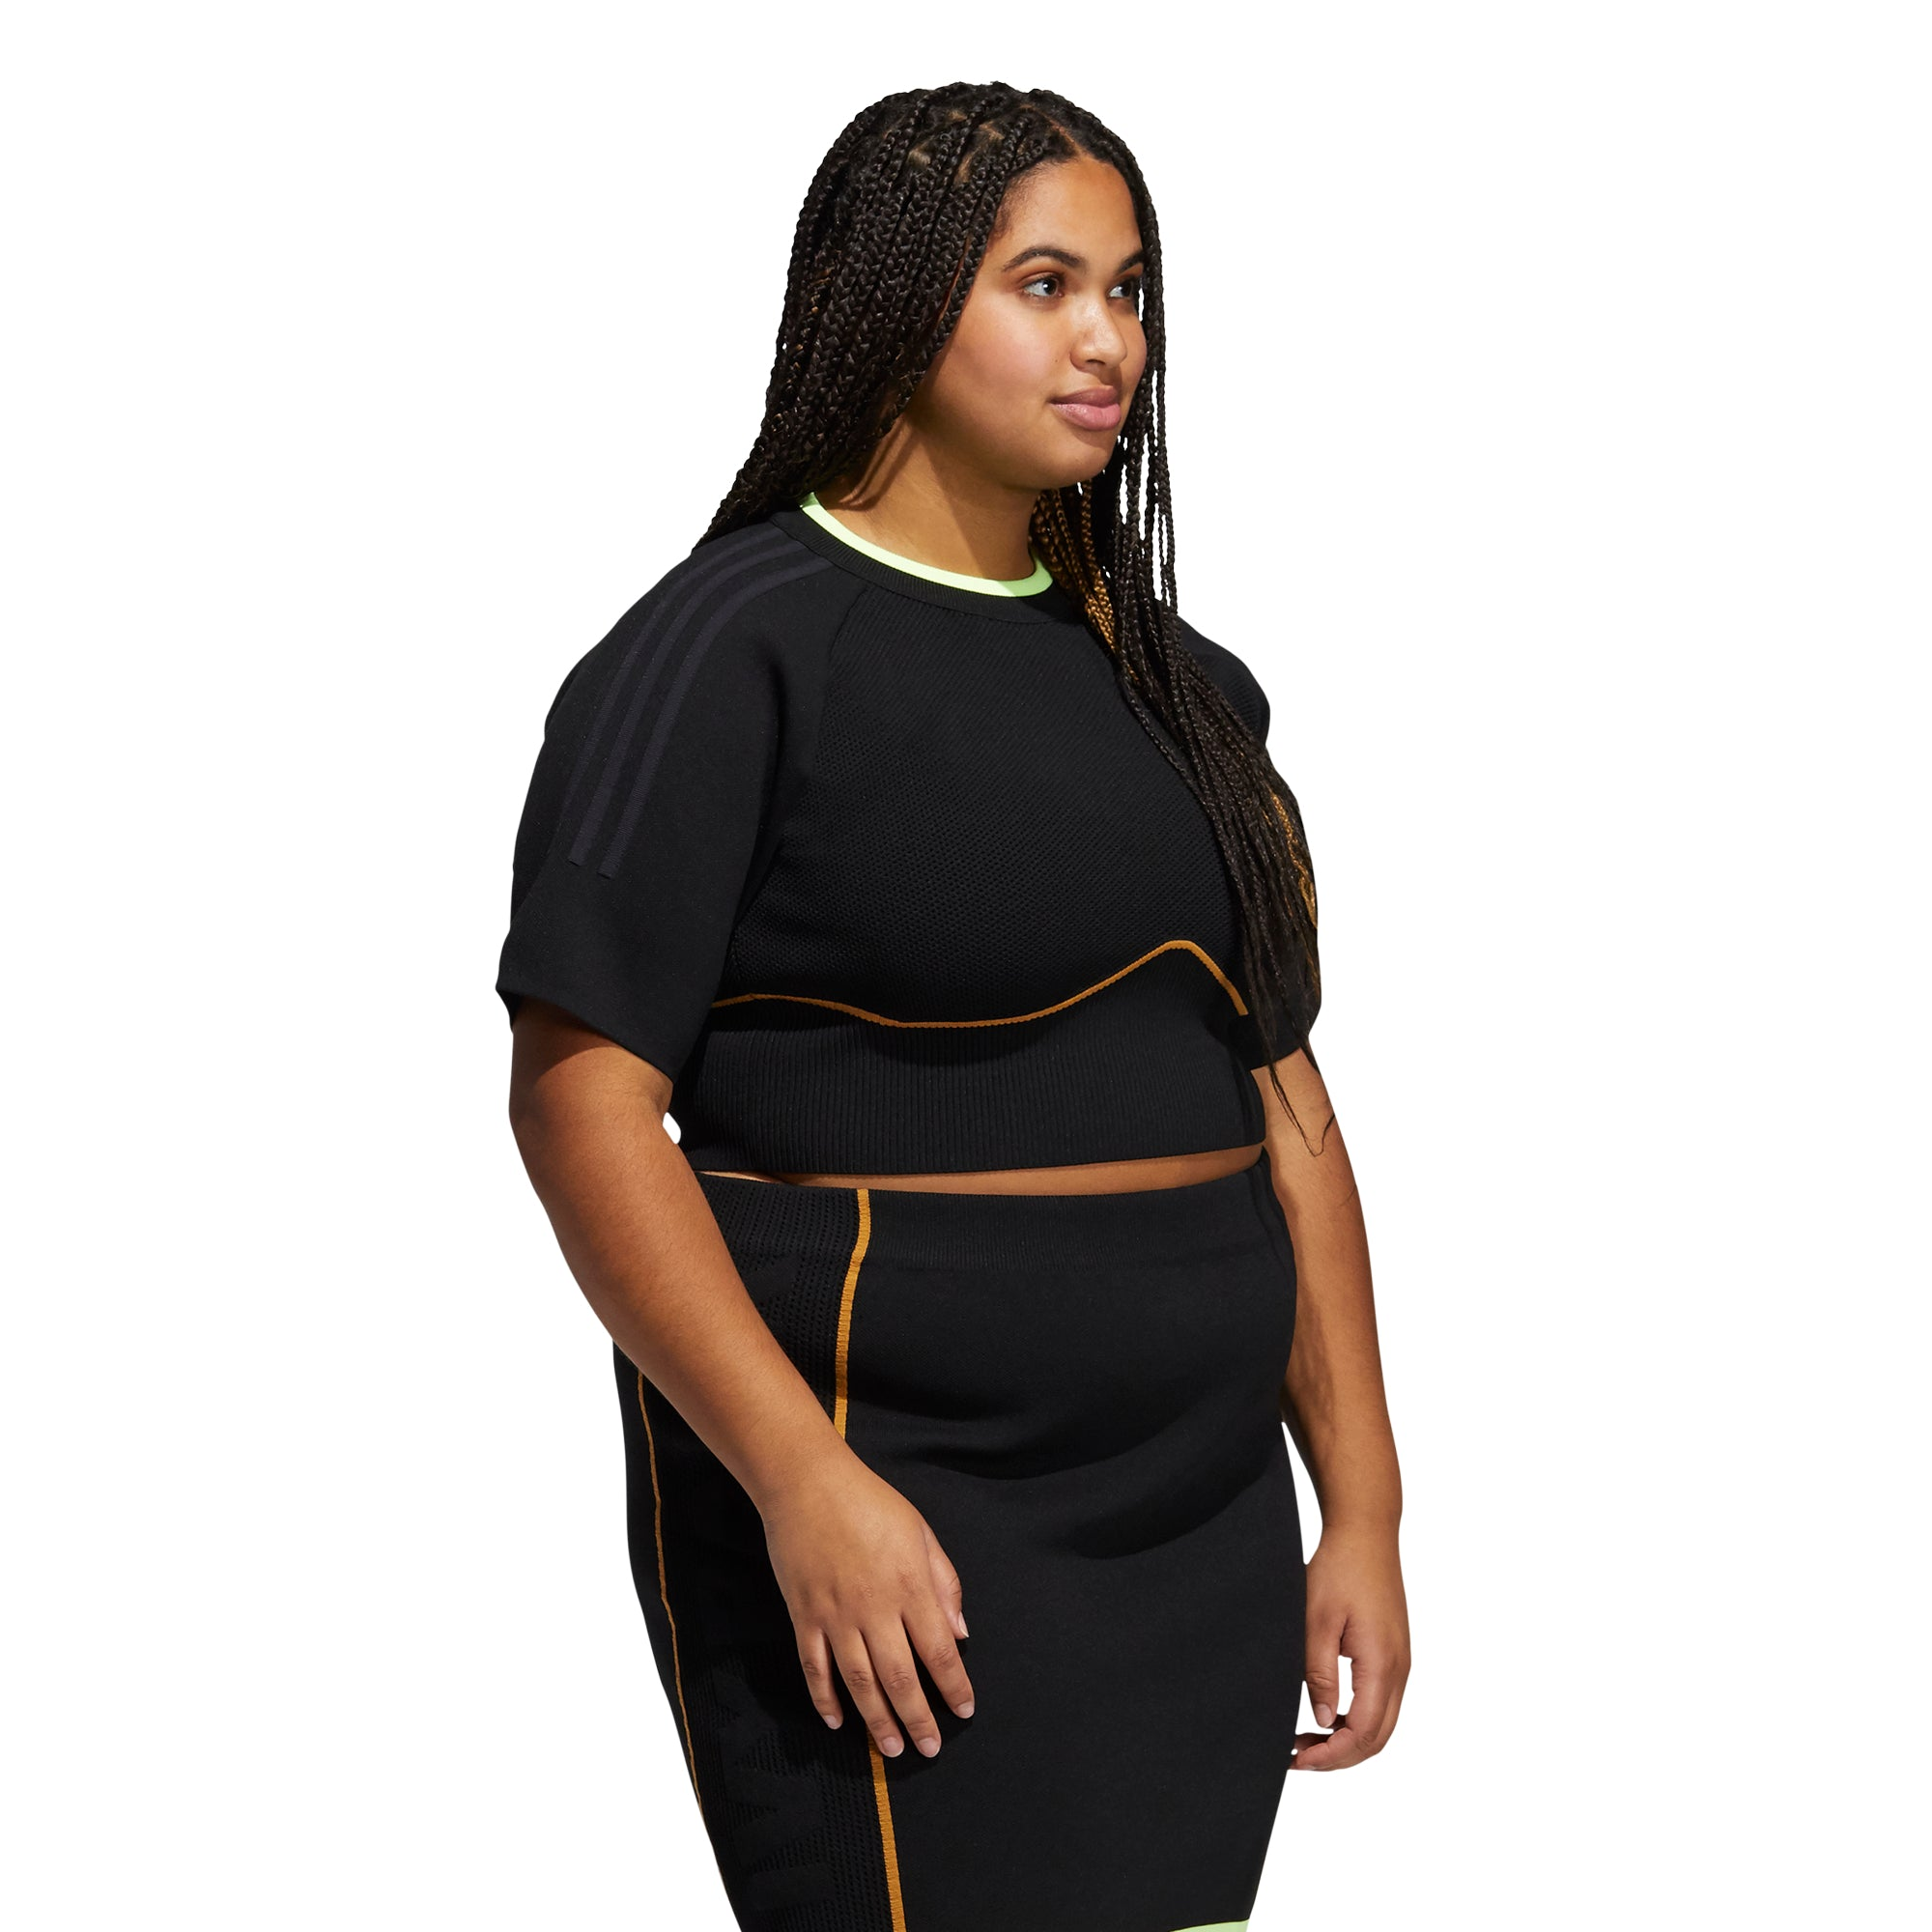 IVY PARK X ADIDAS WMNS KNIT CROP TOP (PLUS SIZE) - BLACK